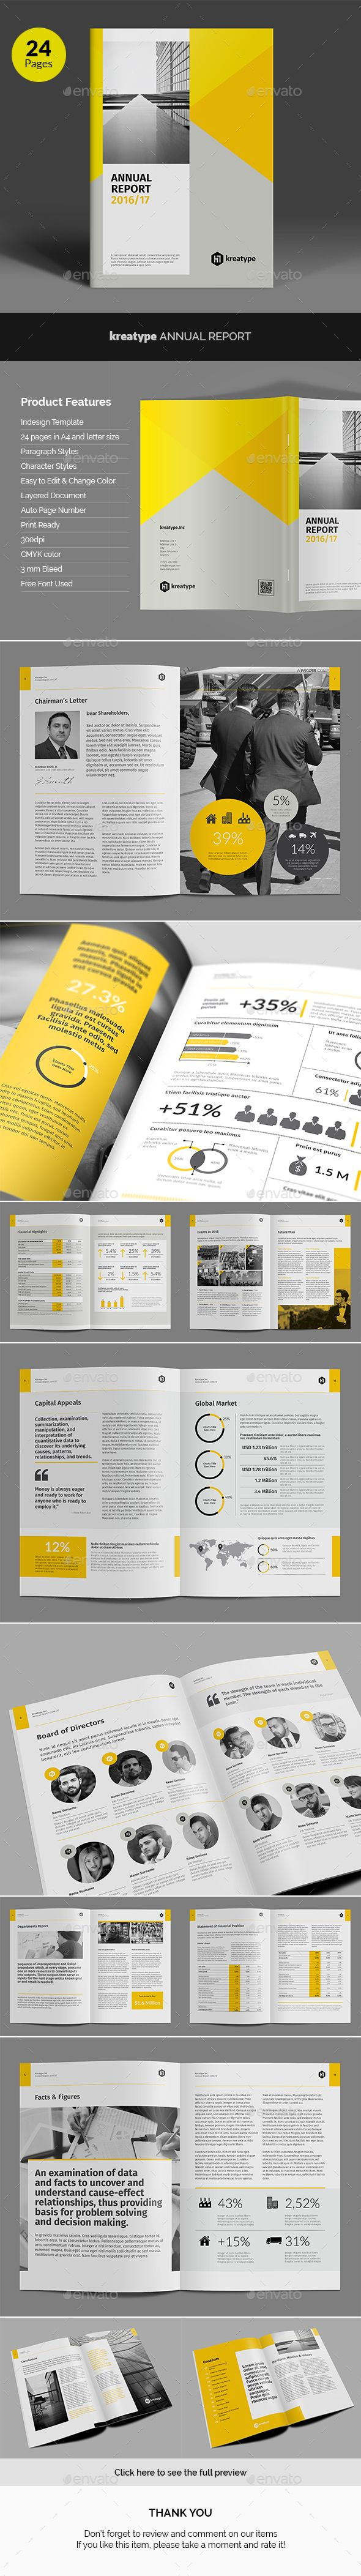 Kreatype Annual Report Design Template Idea - Corporate Brochure Template InDesign INDD. Download here: http://graphicriver.net/item/kreatype-annual-report/16511713?s_rank=882&ref=yinkira